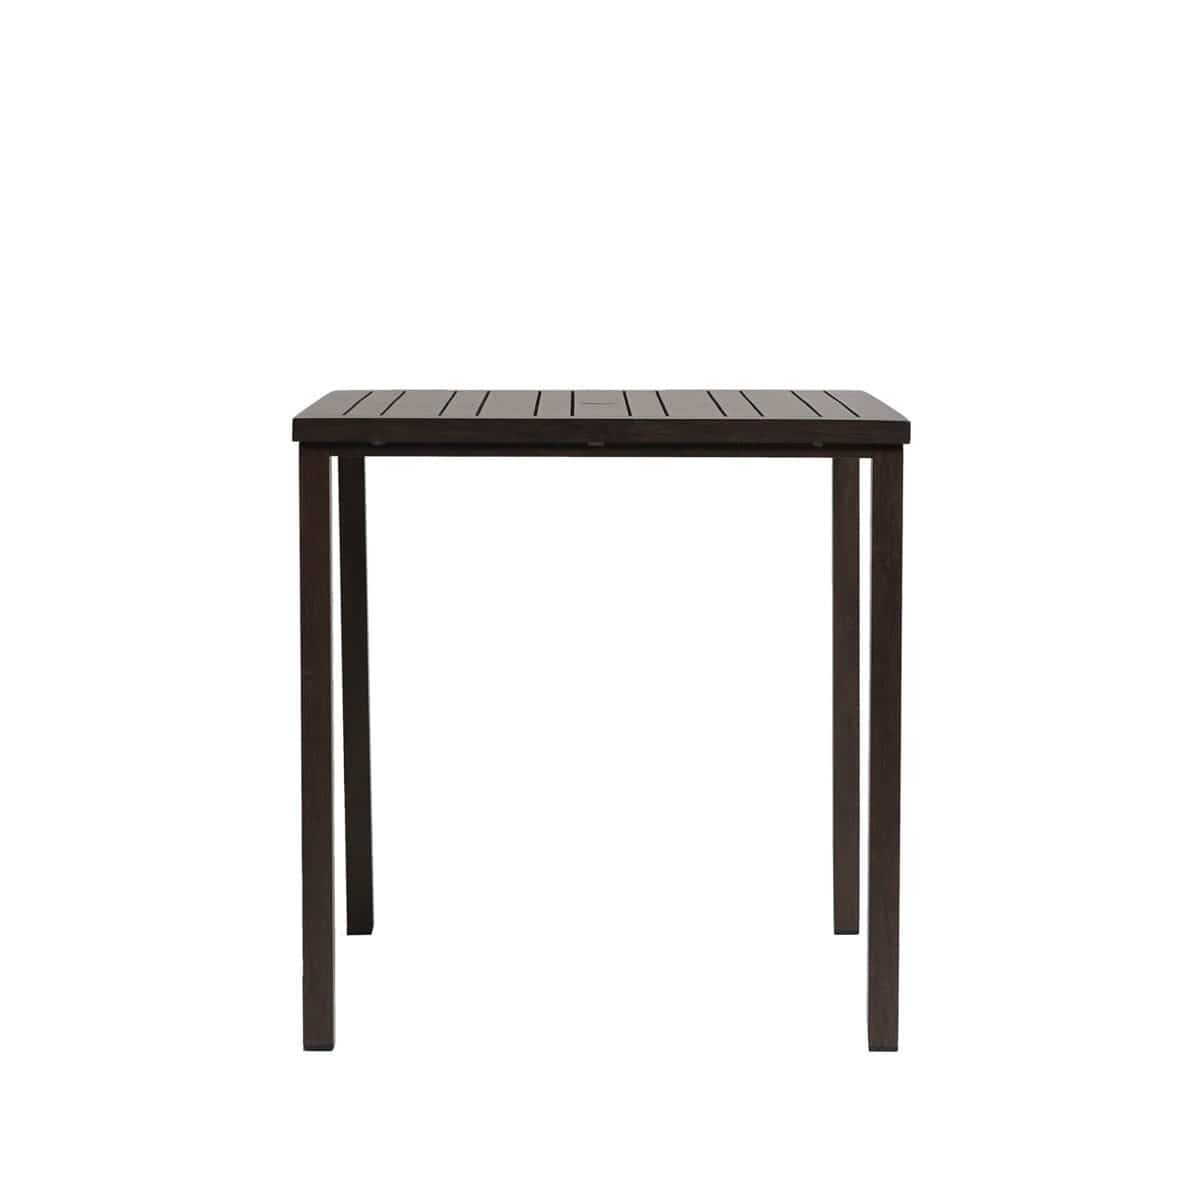 "Ratana Bar Table Canbria 39"" Square Bar Table w/Umbrella Hole"